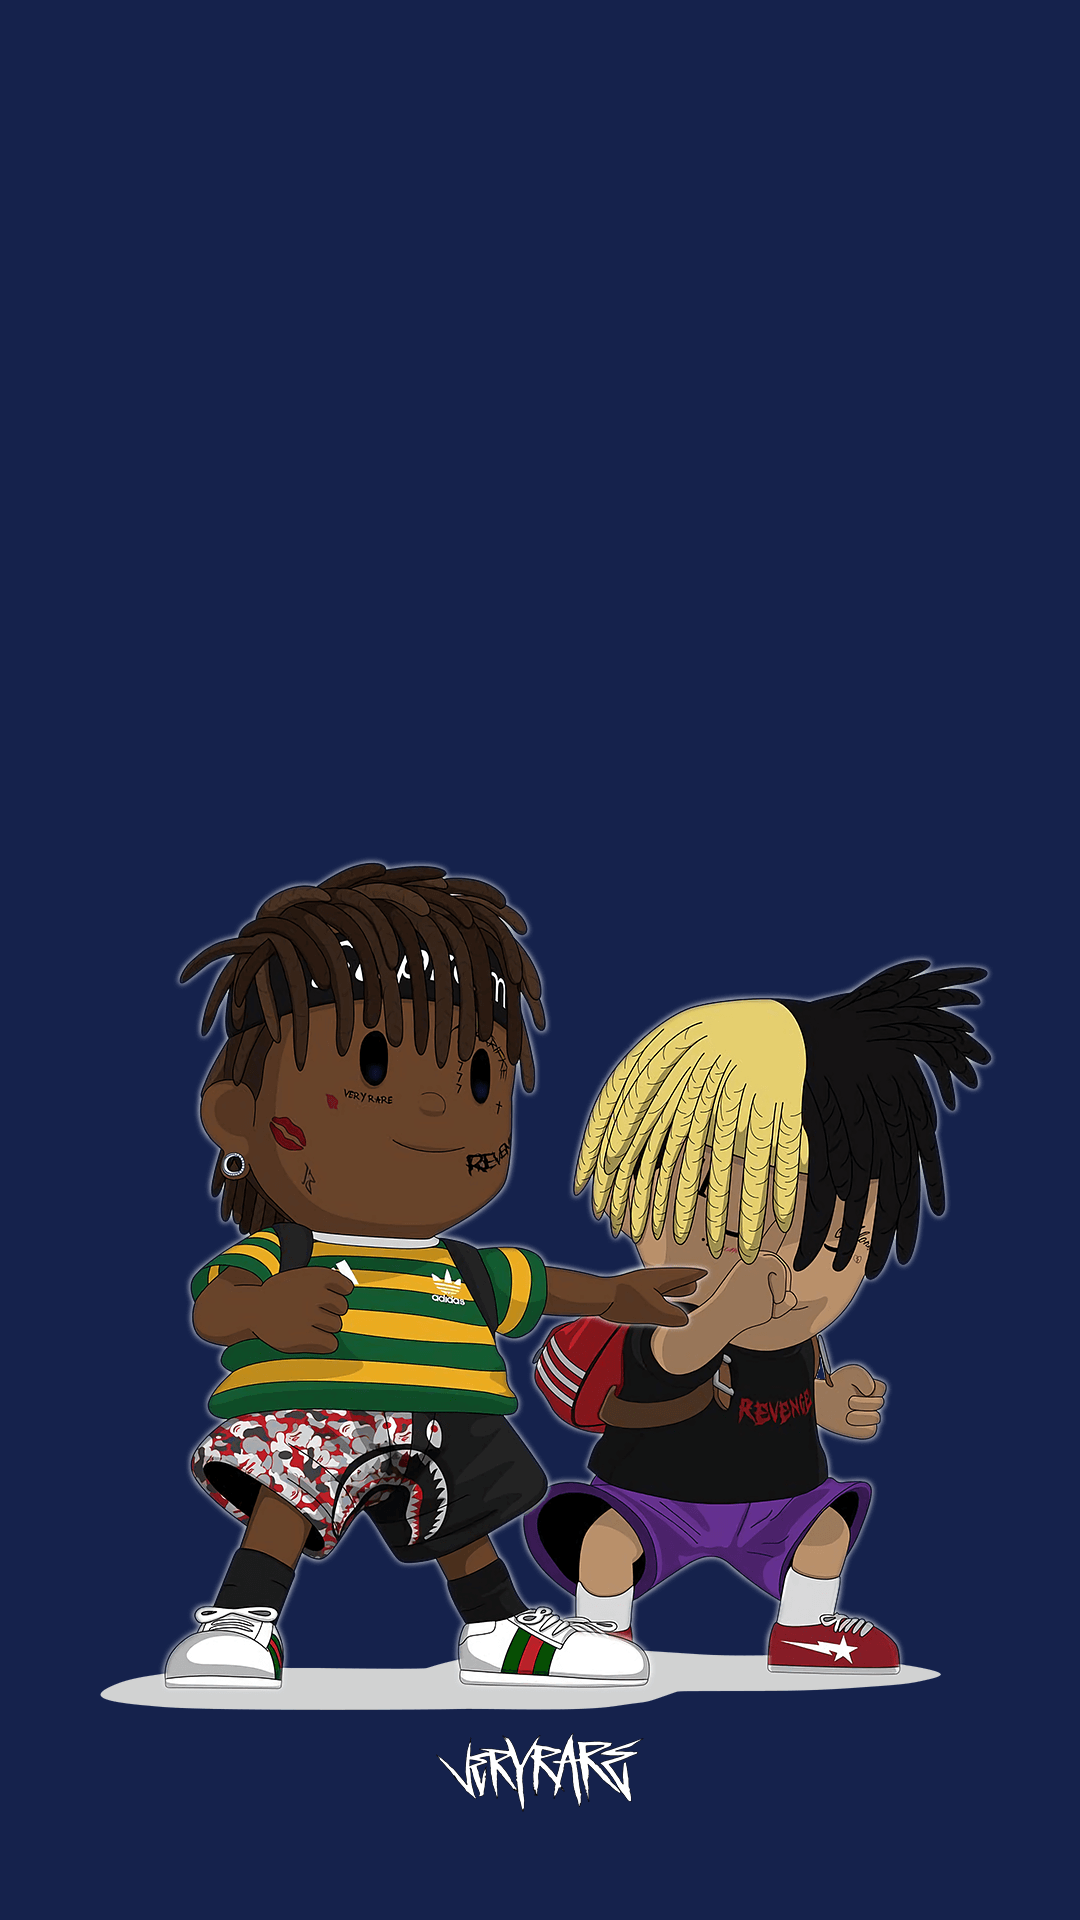 Juice Wrld Anime Wallpaper Iphone